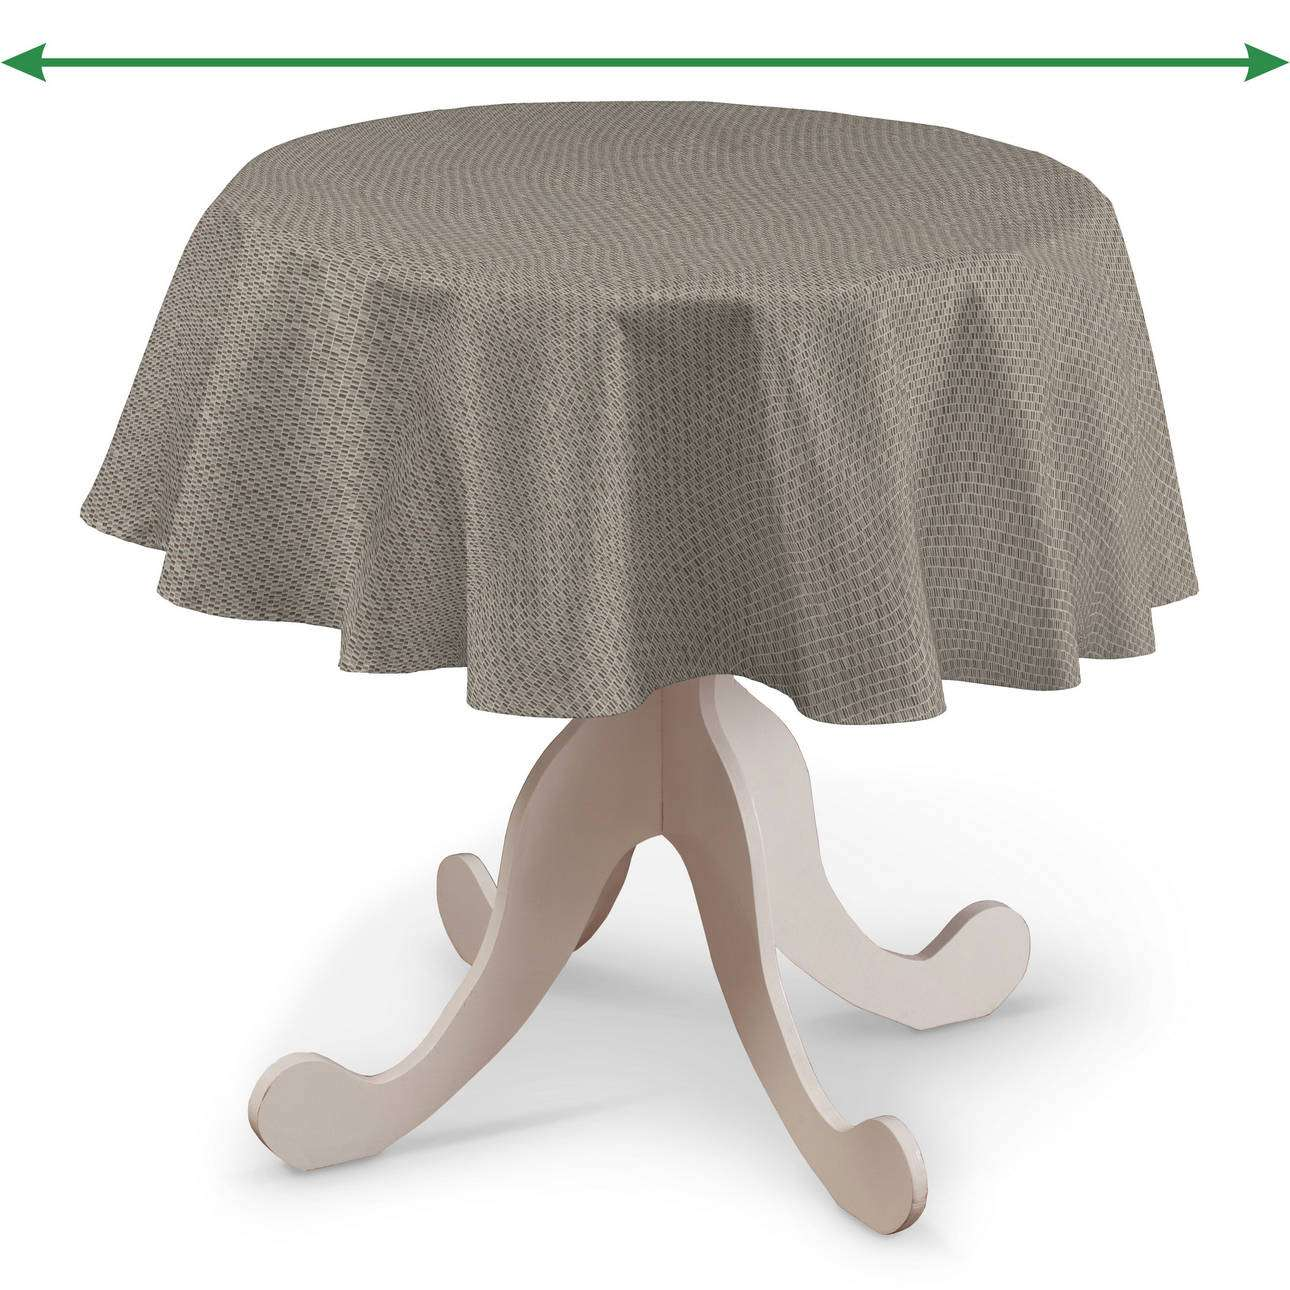 Round tablecloth in collection Retro Glam, fabric: 142-82